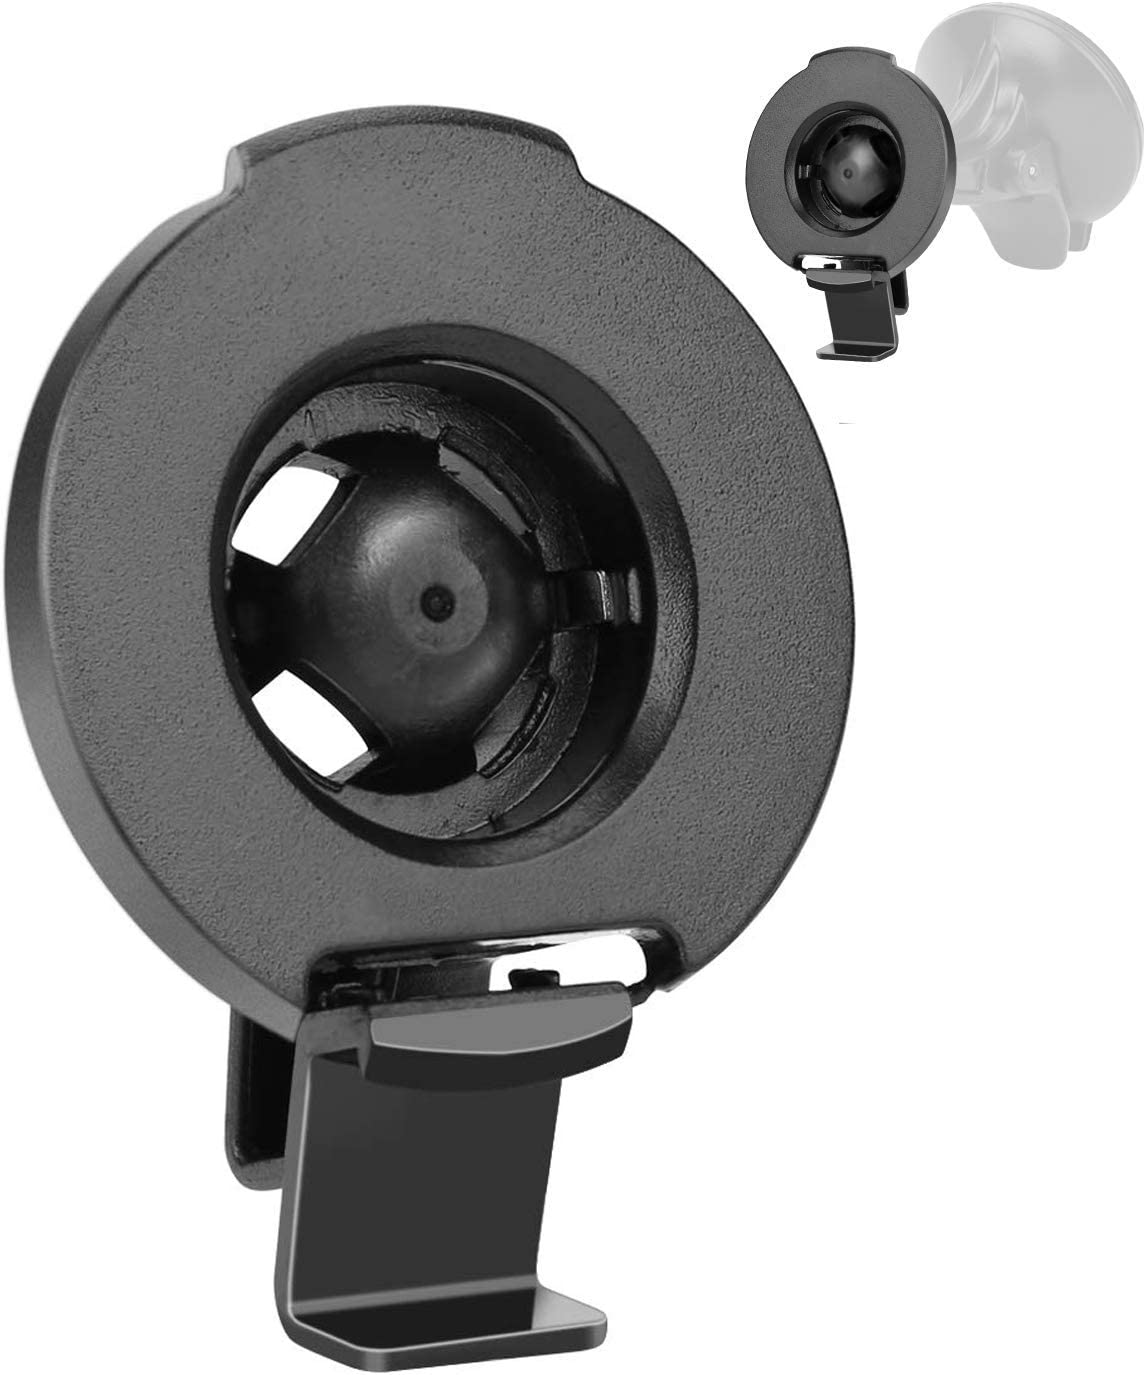 Y-SPACE Replacement Bracket Mount Compatible with GPS Garmin Nuvi 50 50LM GPS Compare to Garmin 010-11765-02